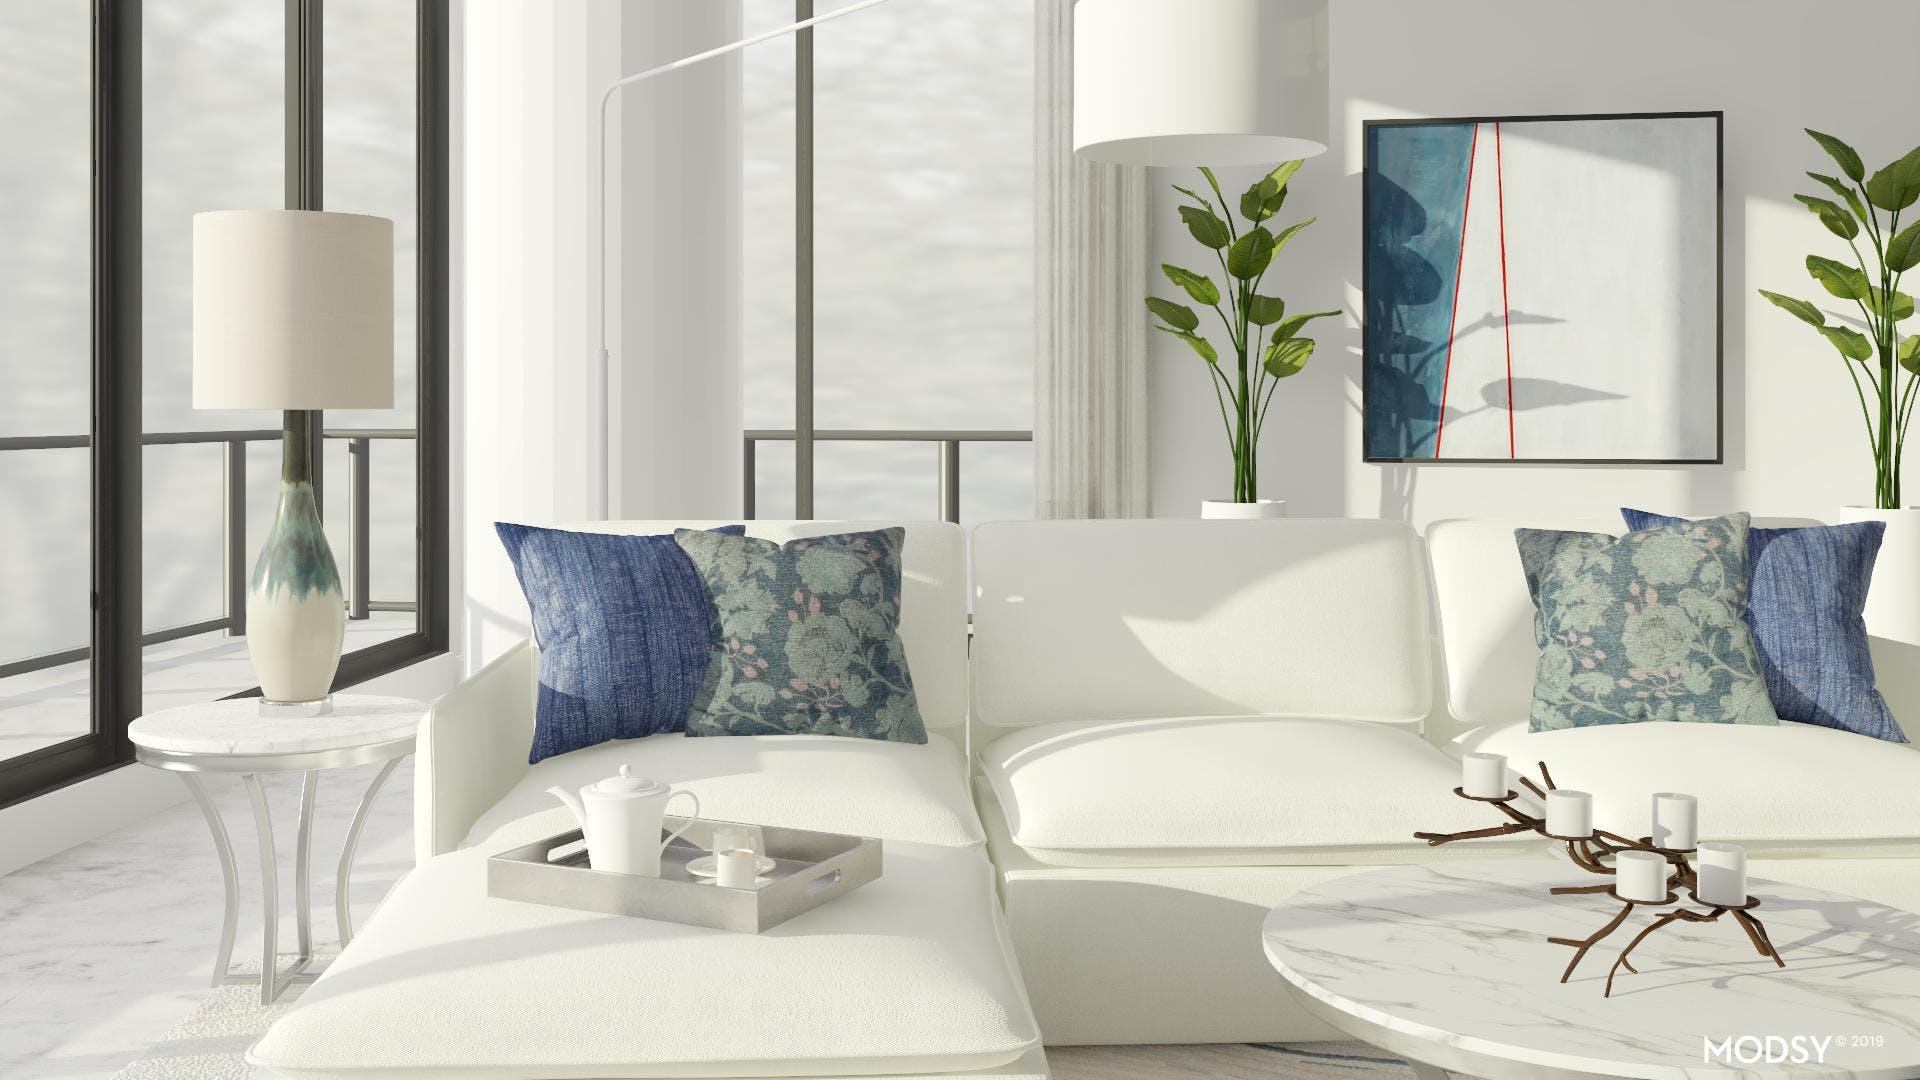 The Perfect Sit: Contemporary Lounging